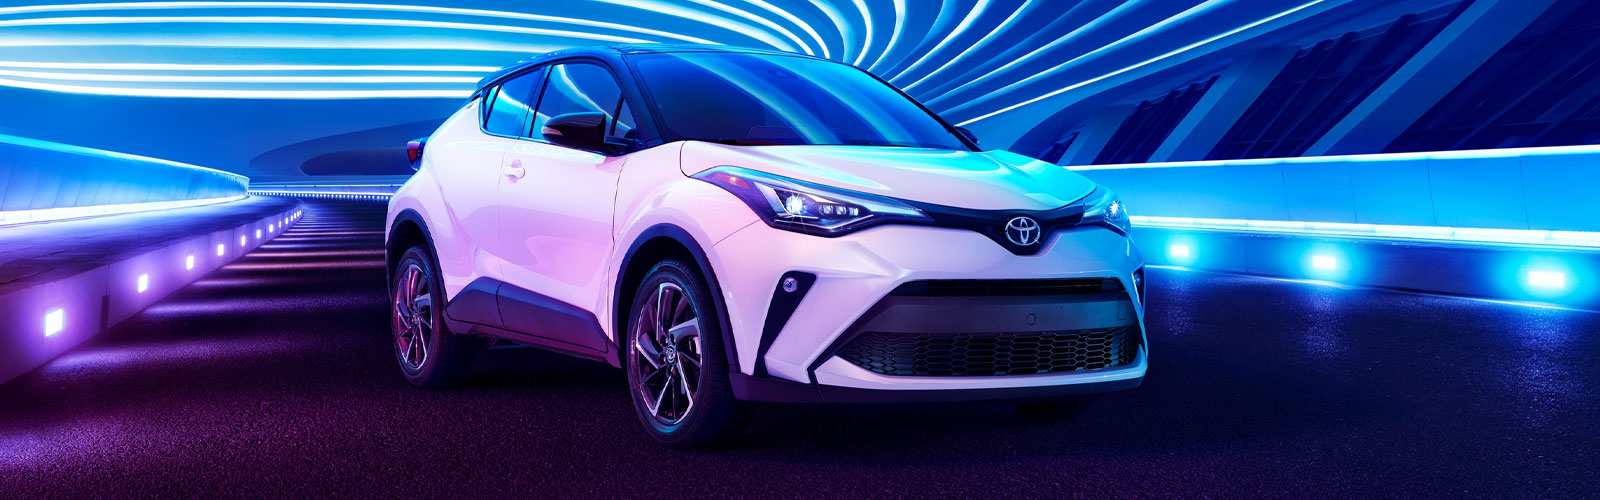 2020 Toyota C-HR Crossover Models For Sale In Grenada, Mississippi